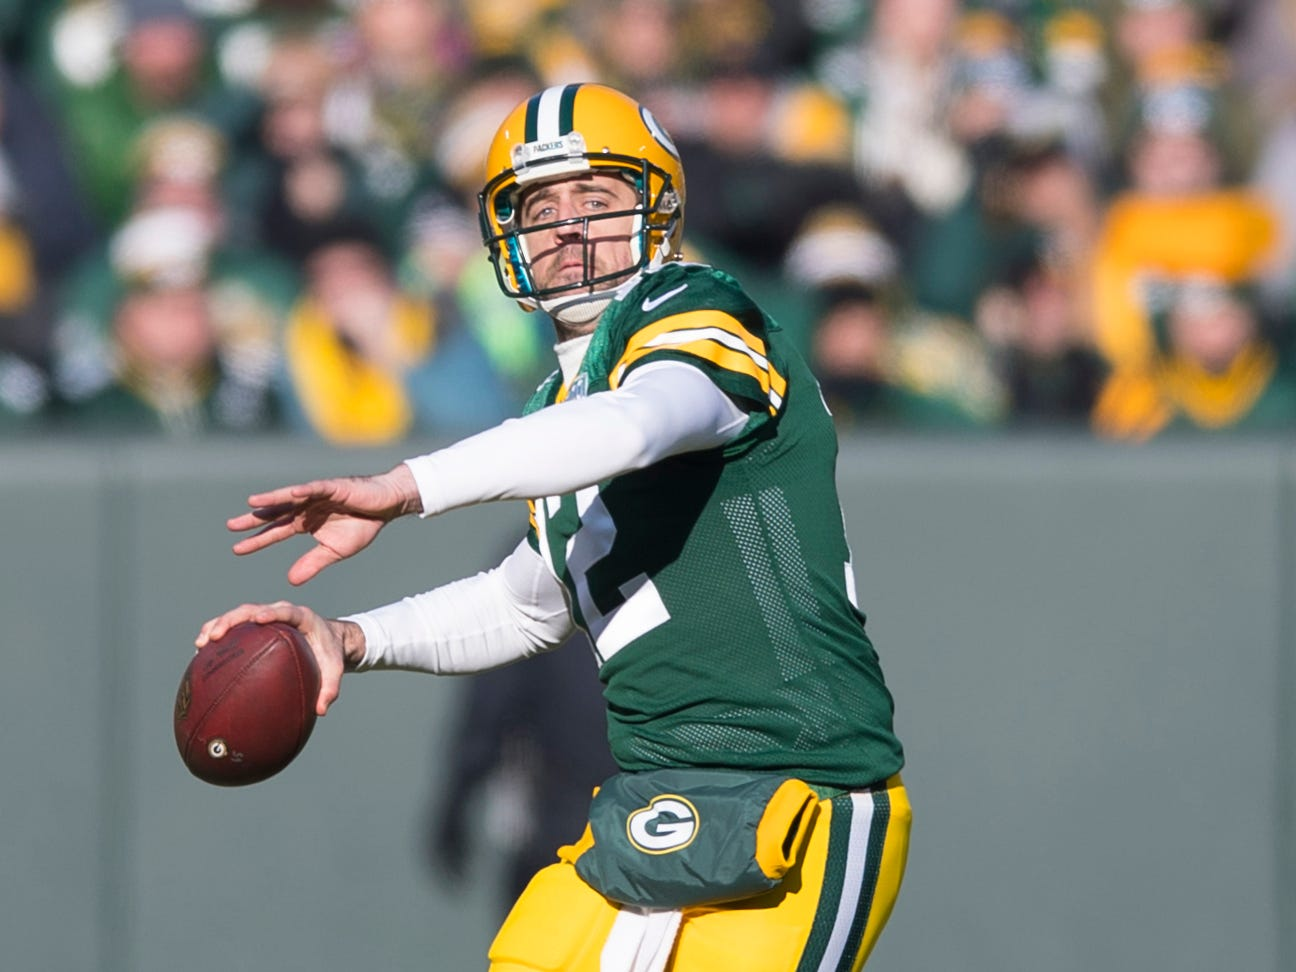 Packers quarterback Aaron Rodgers throws against the Falcons.